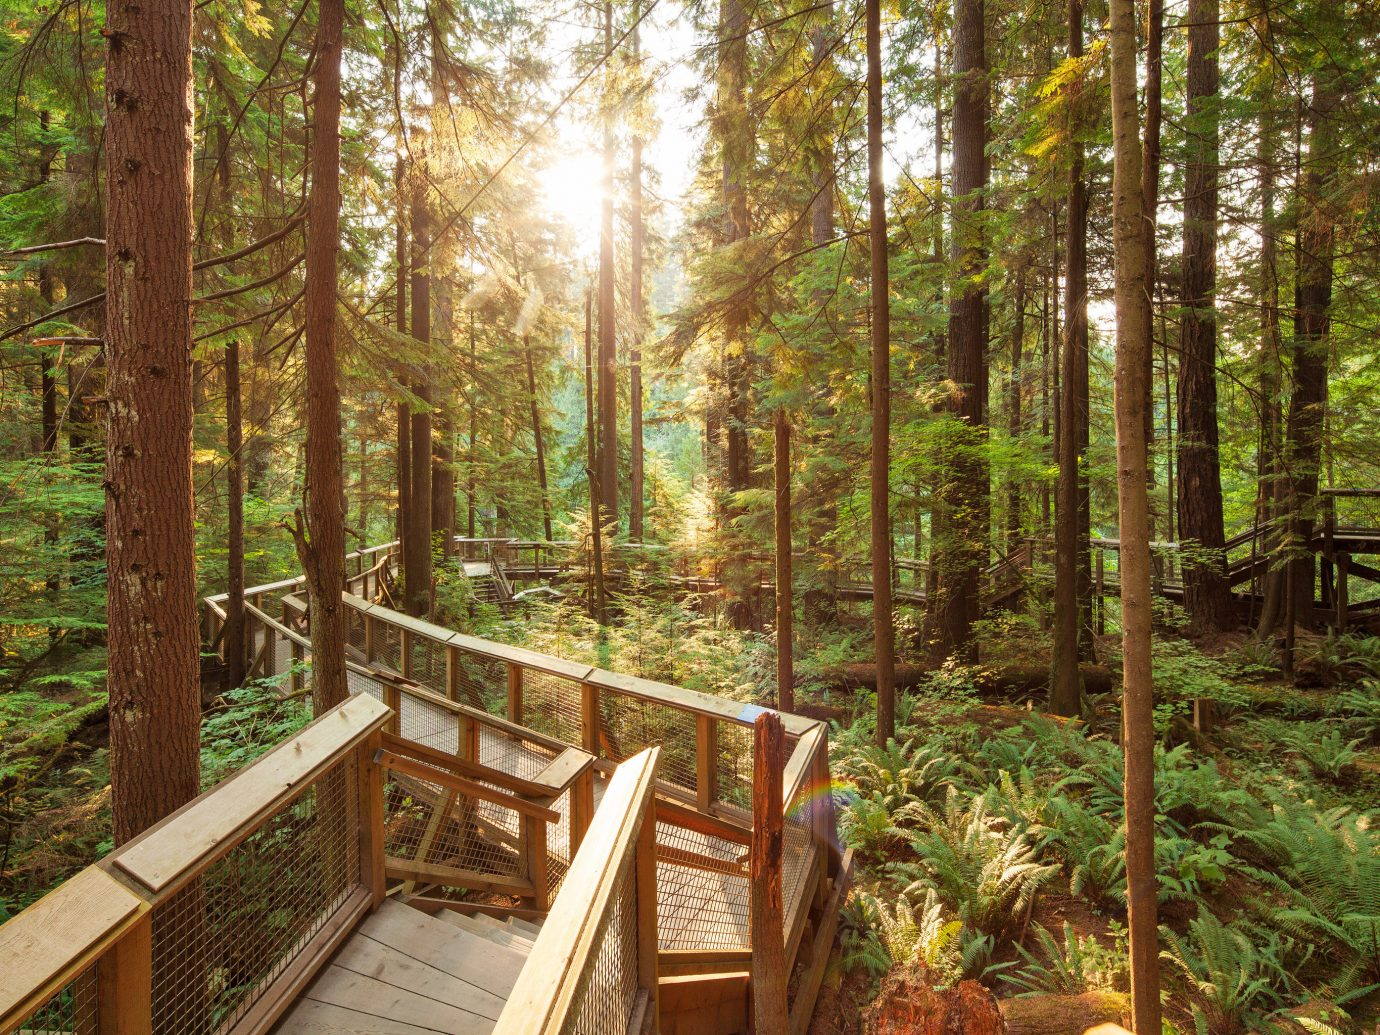 Trip Ideas tree outdoor habitat woodland natural environment Forest wilderness wood wooden ecosystem park old growth forest temperate broadleaf and mixed forest rainforest biome temperate coniferous forest wooded Jungle sunlight trail area autumn deciduous plant surrounded